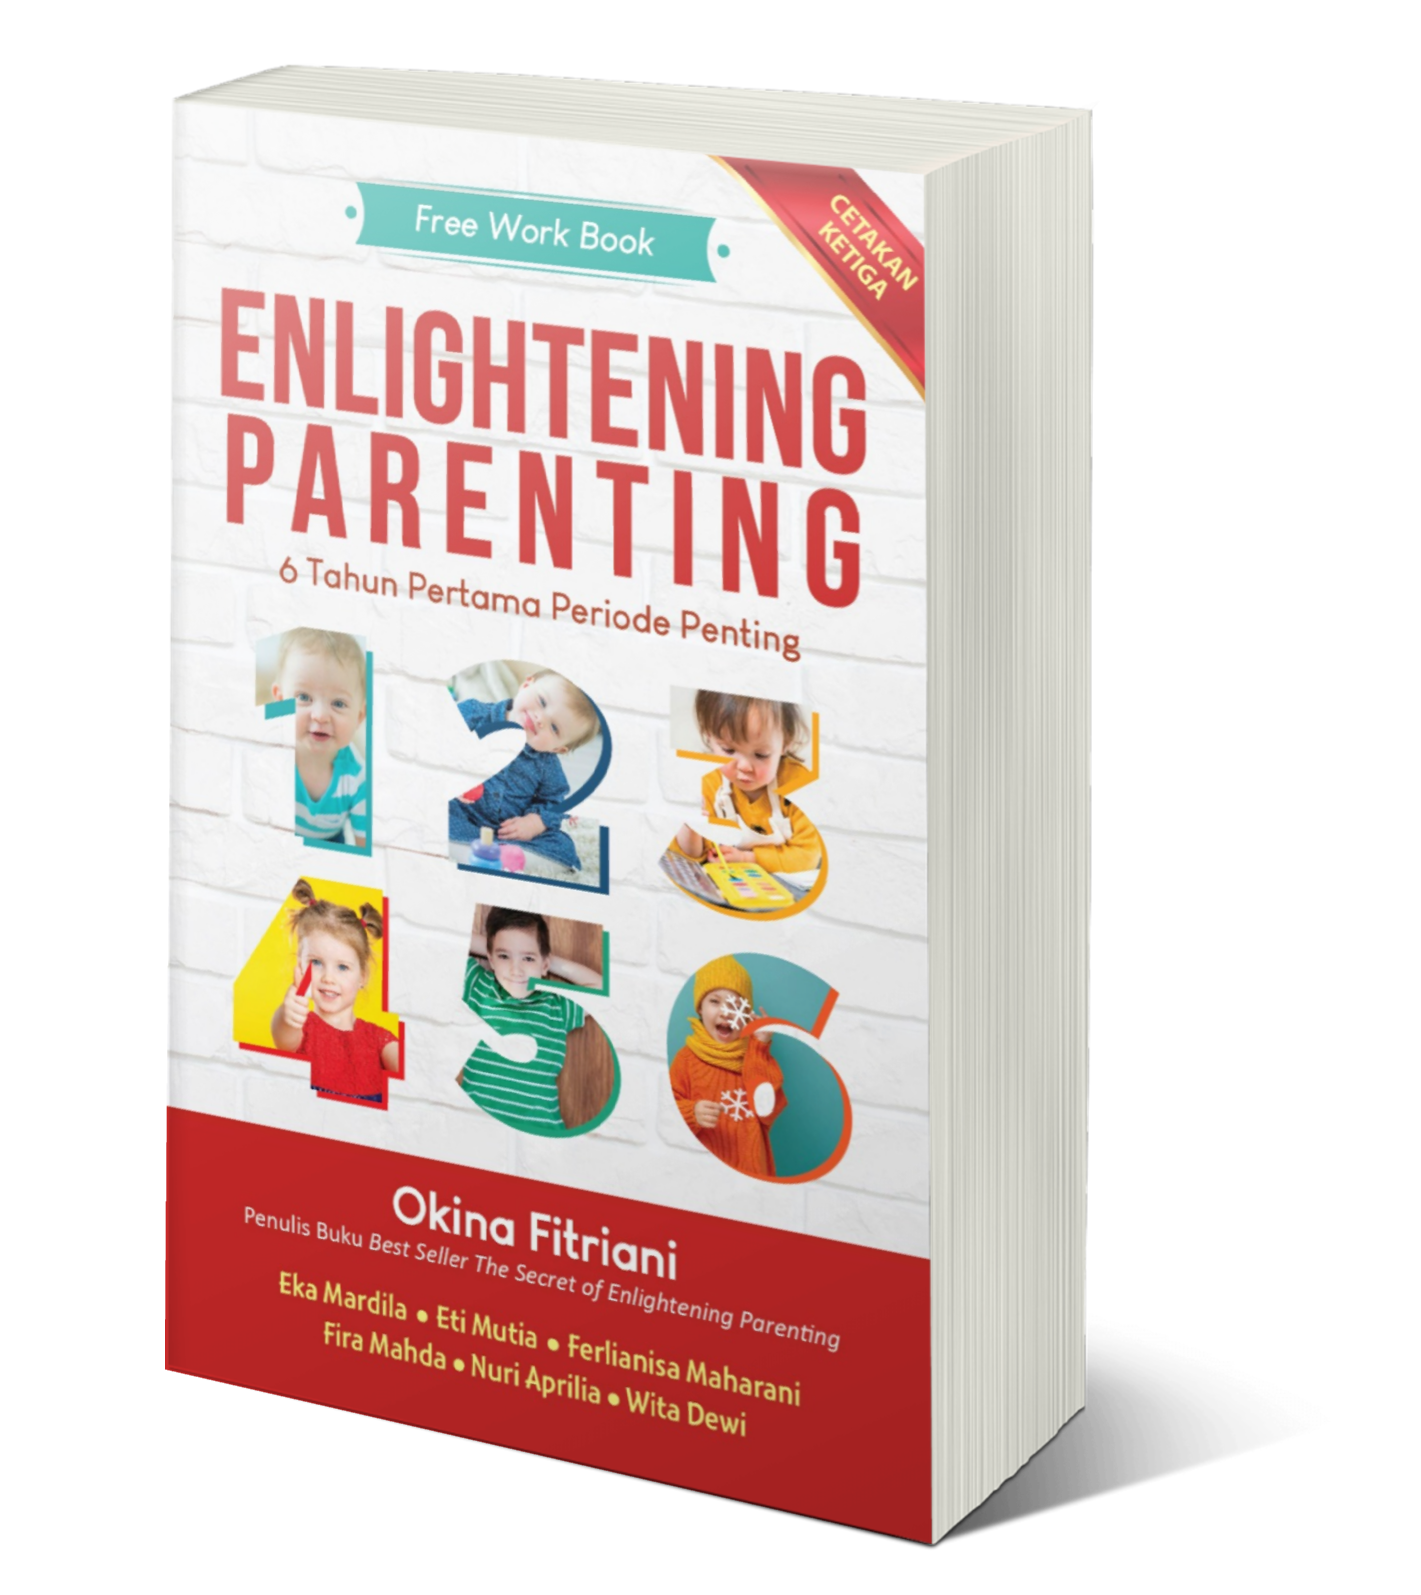 Buku Enlightening Parenting 6 Tahun Periode Penting